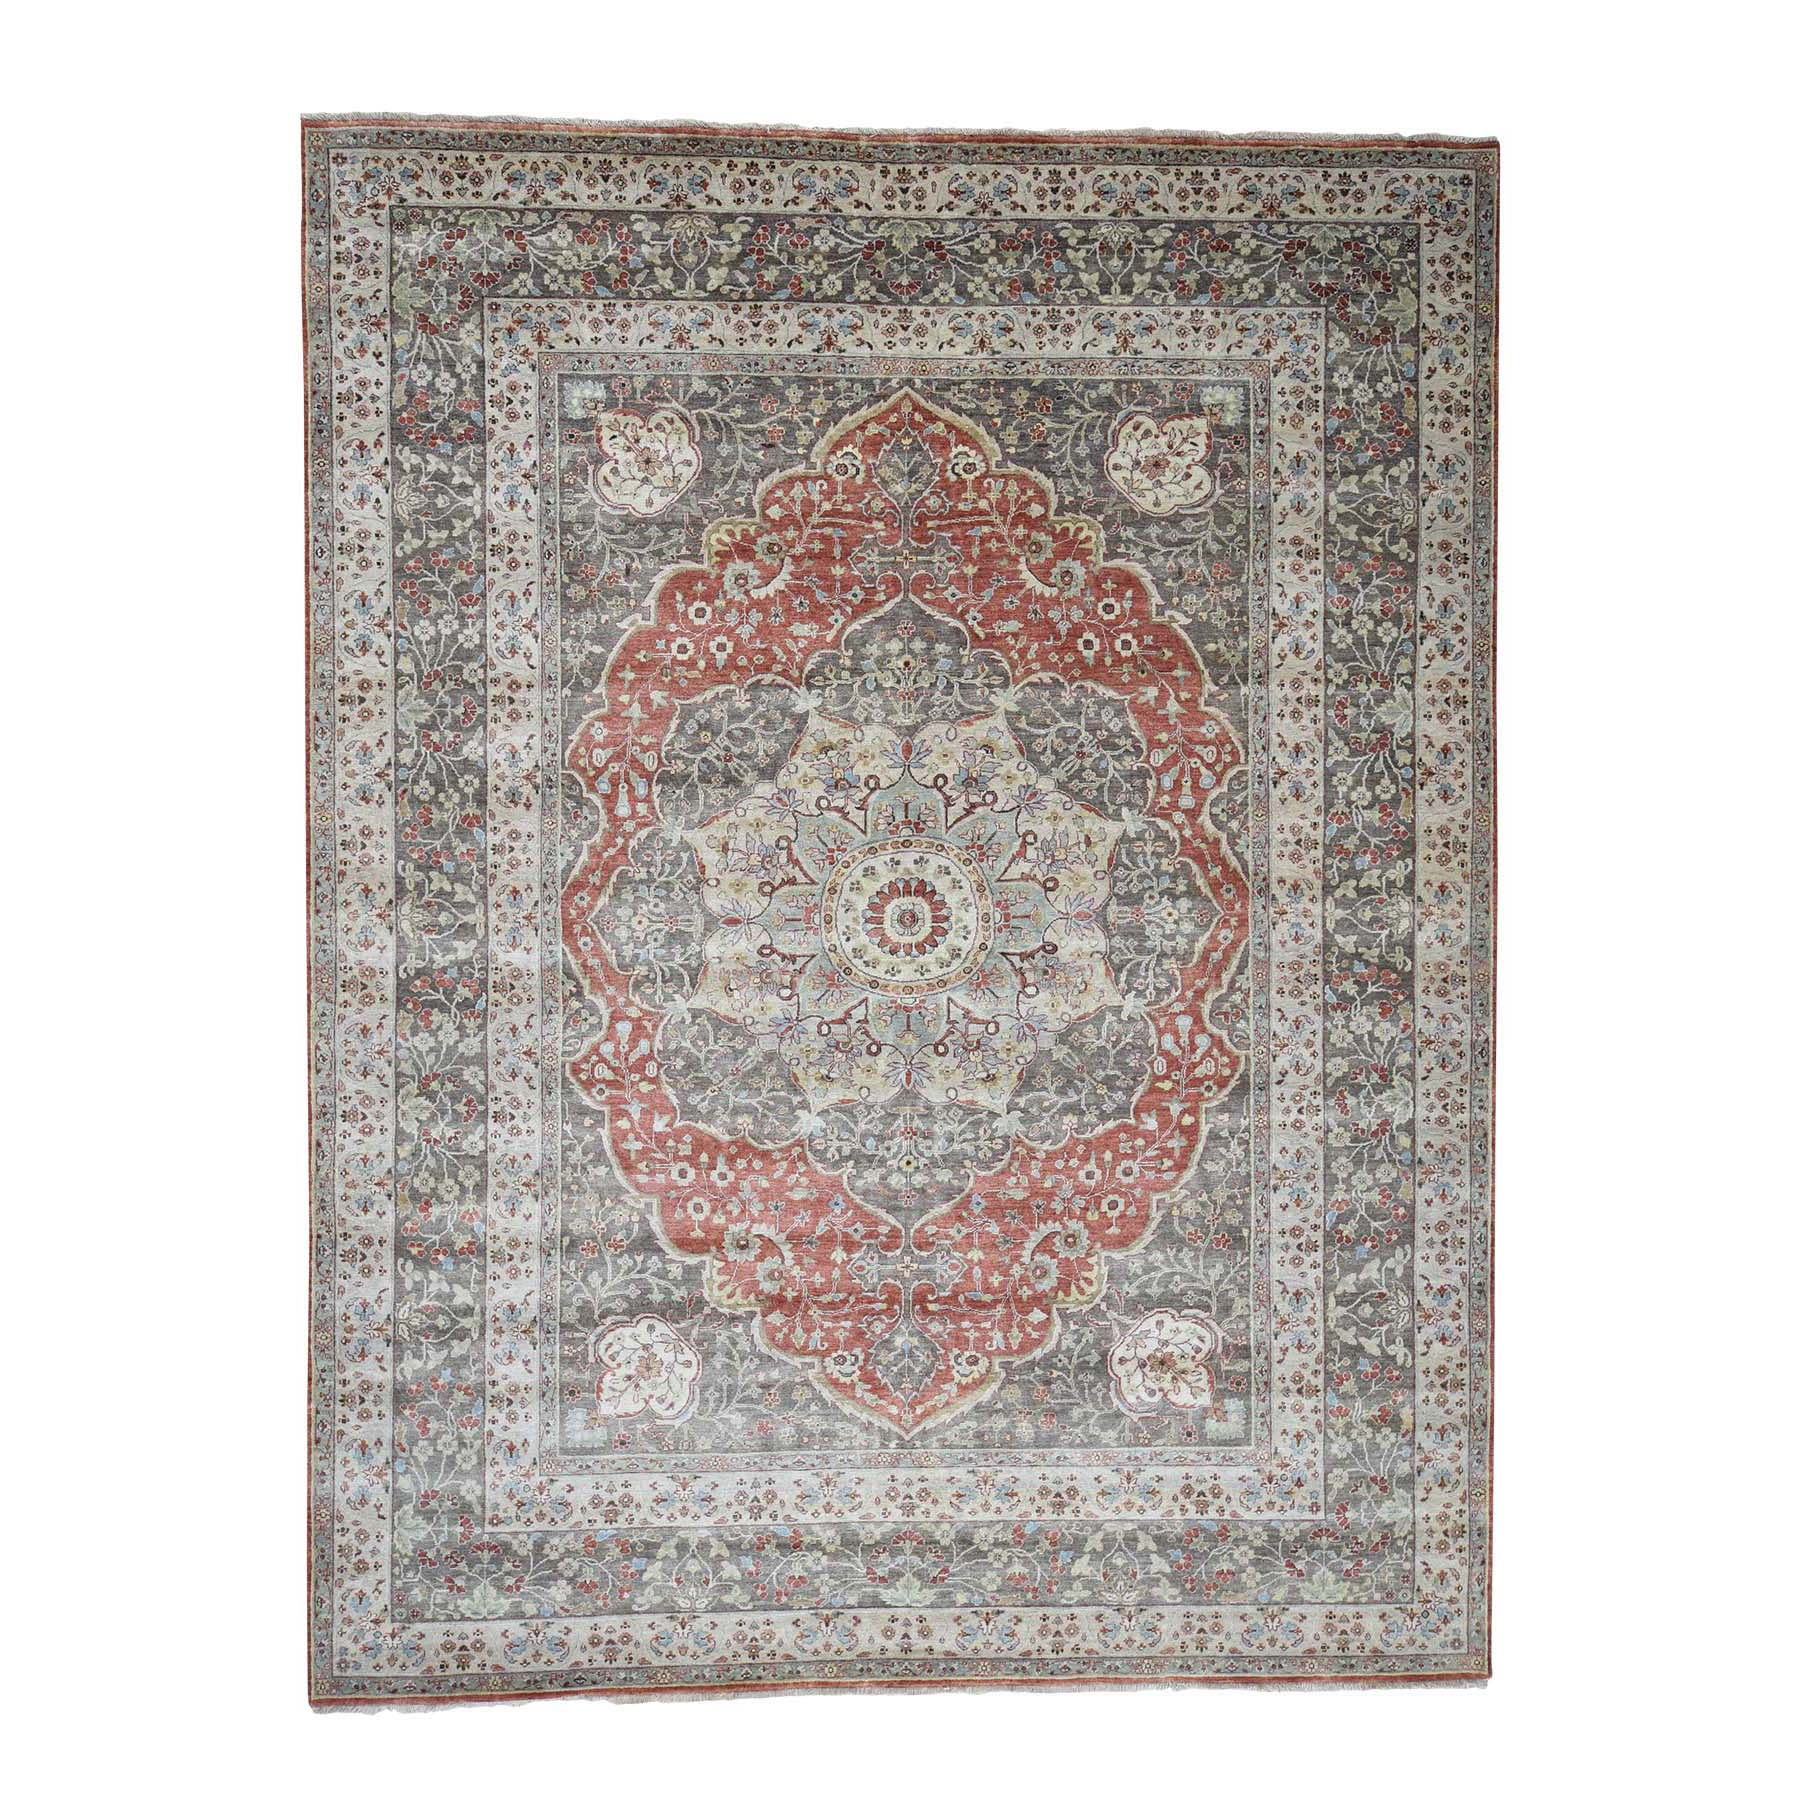 "9'2""x12' Hand-Knotted Antiqued Haji Jalili Tabriz Re-creation Pure Wool Rug"